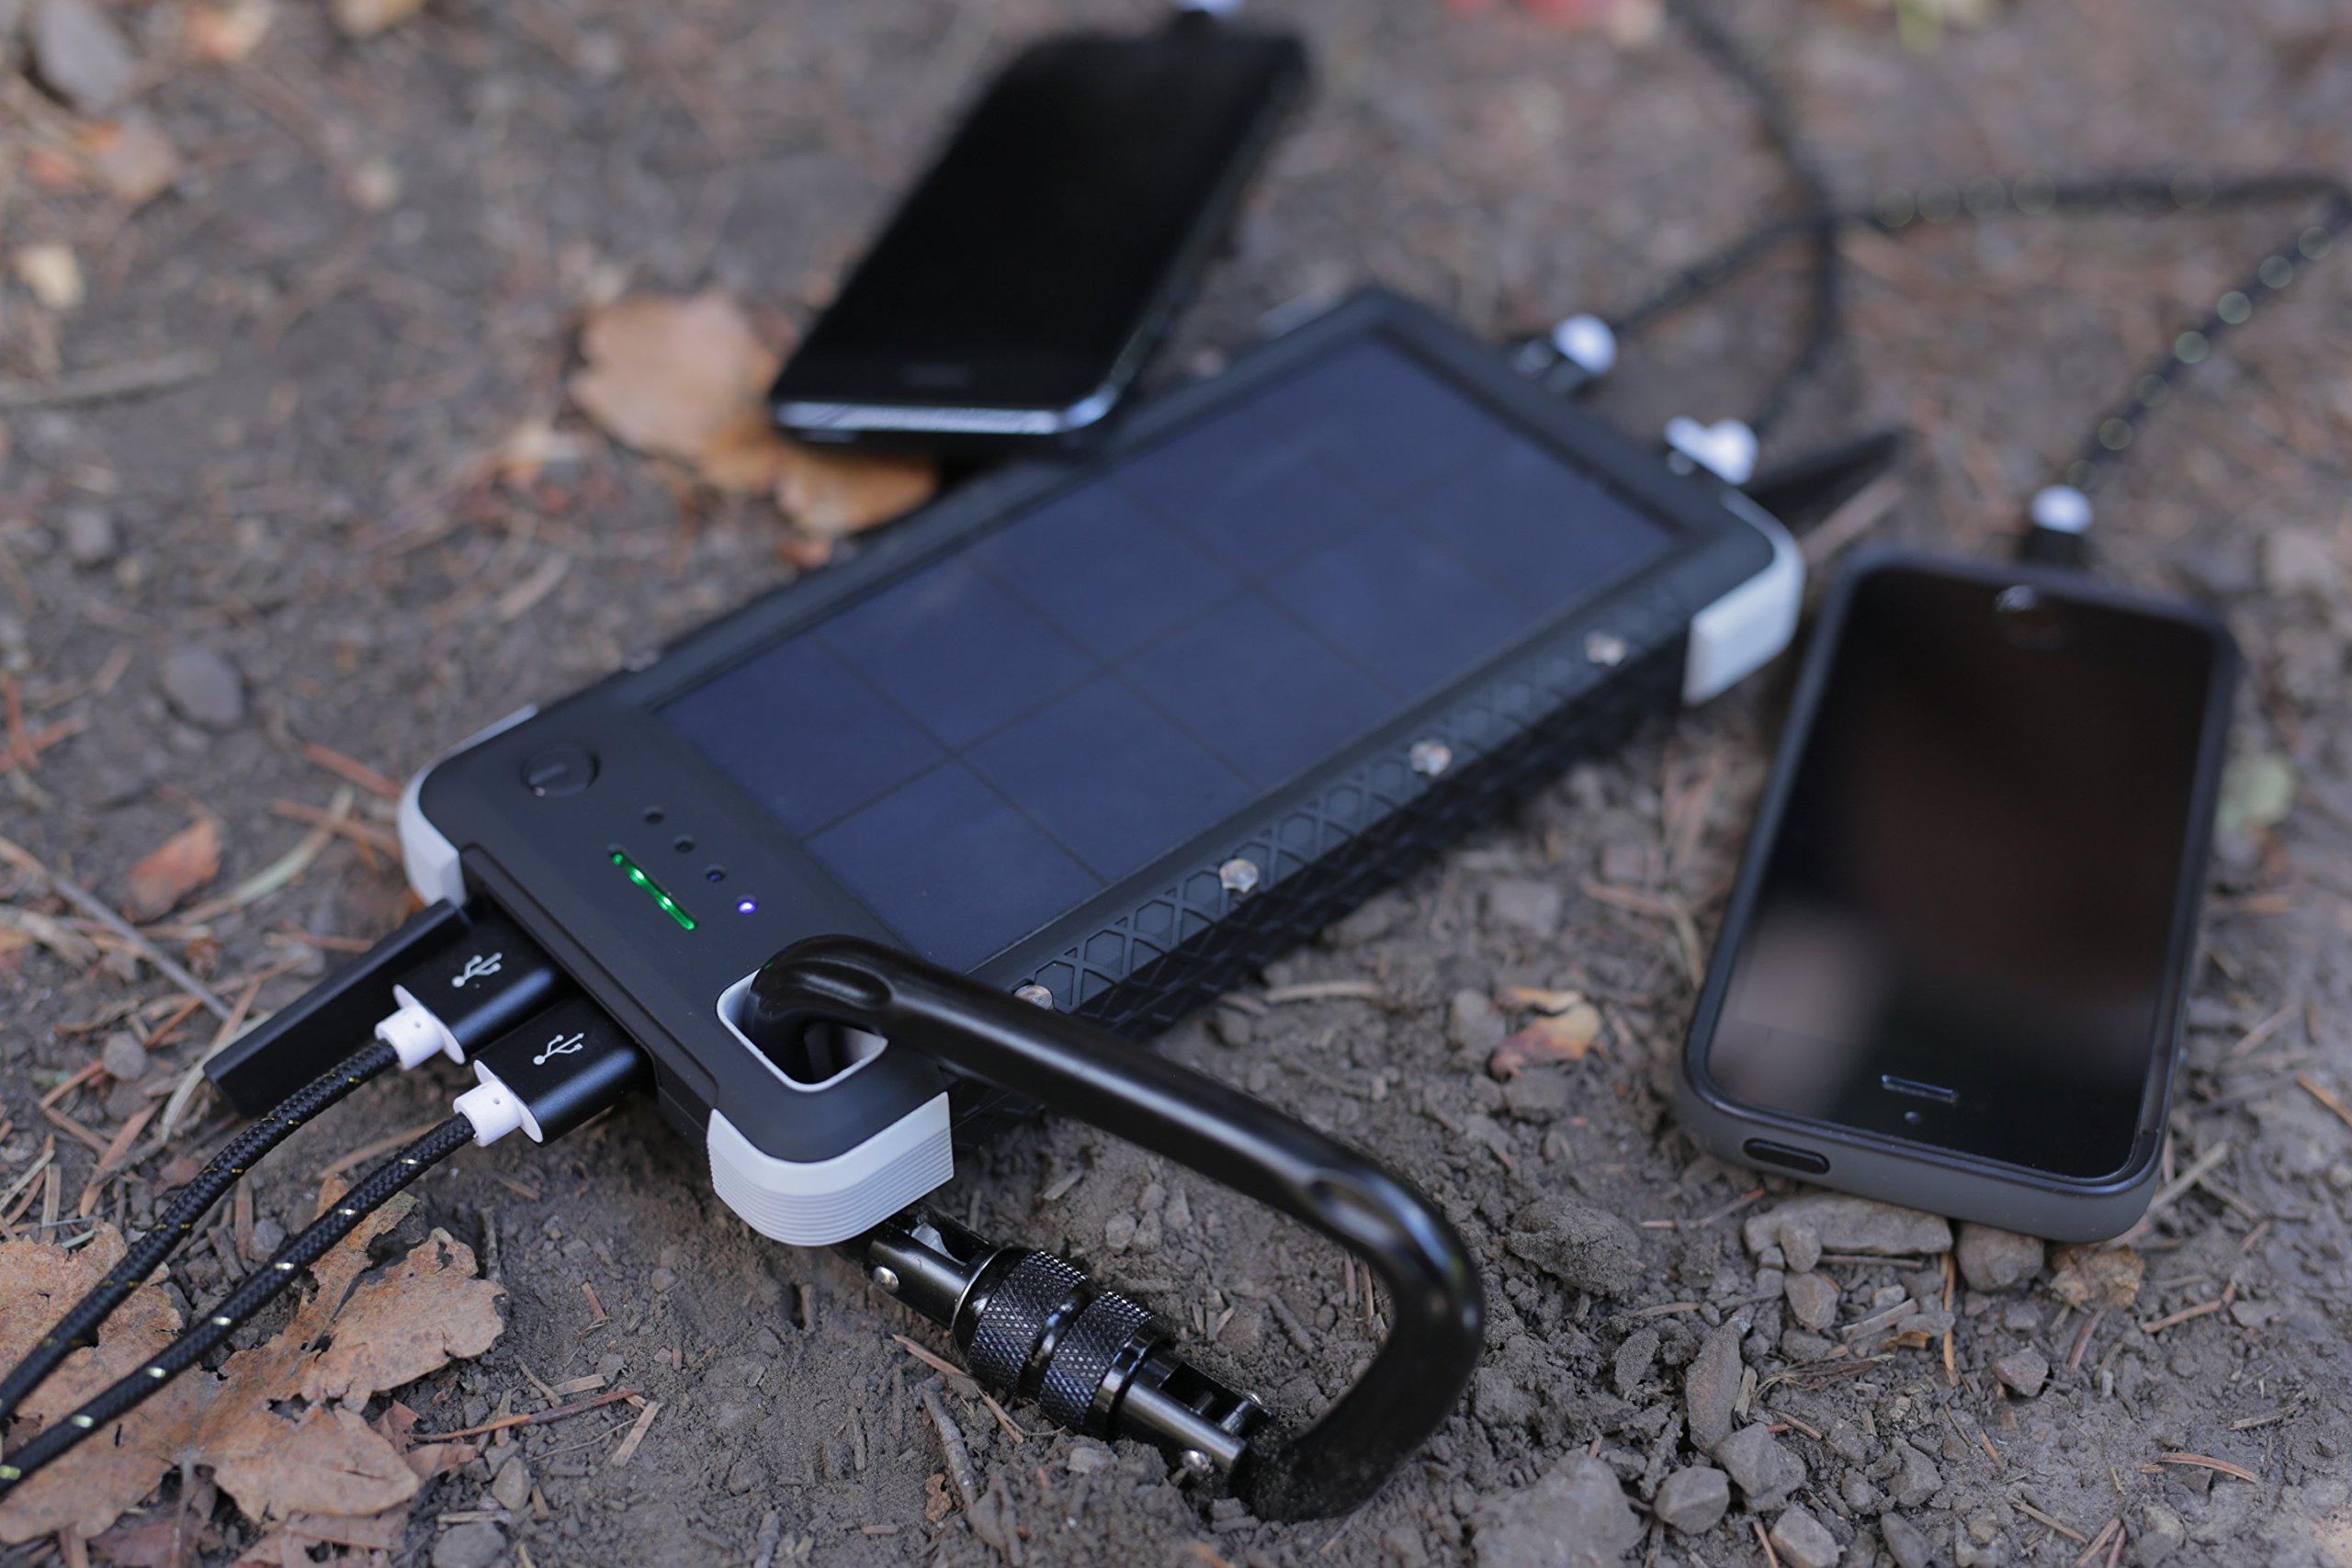 SOS20K - 20,000 mAh Rugged Solar Charger with Flashlight, IP67 Waterproof Solar Camping Battery & 4 Port USB Fast Charging Powerbank, by RoamProof by RoamProof (Image #3)